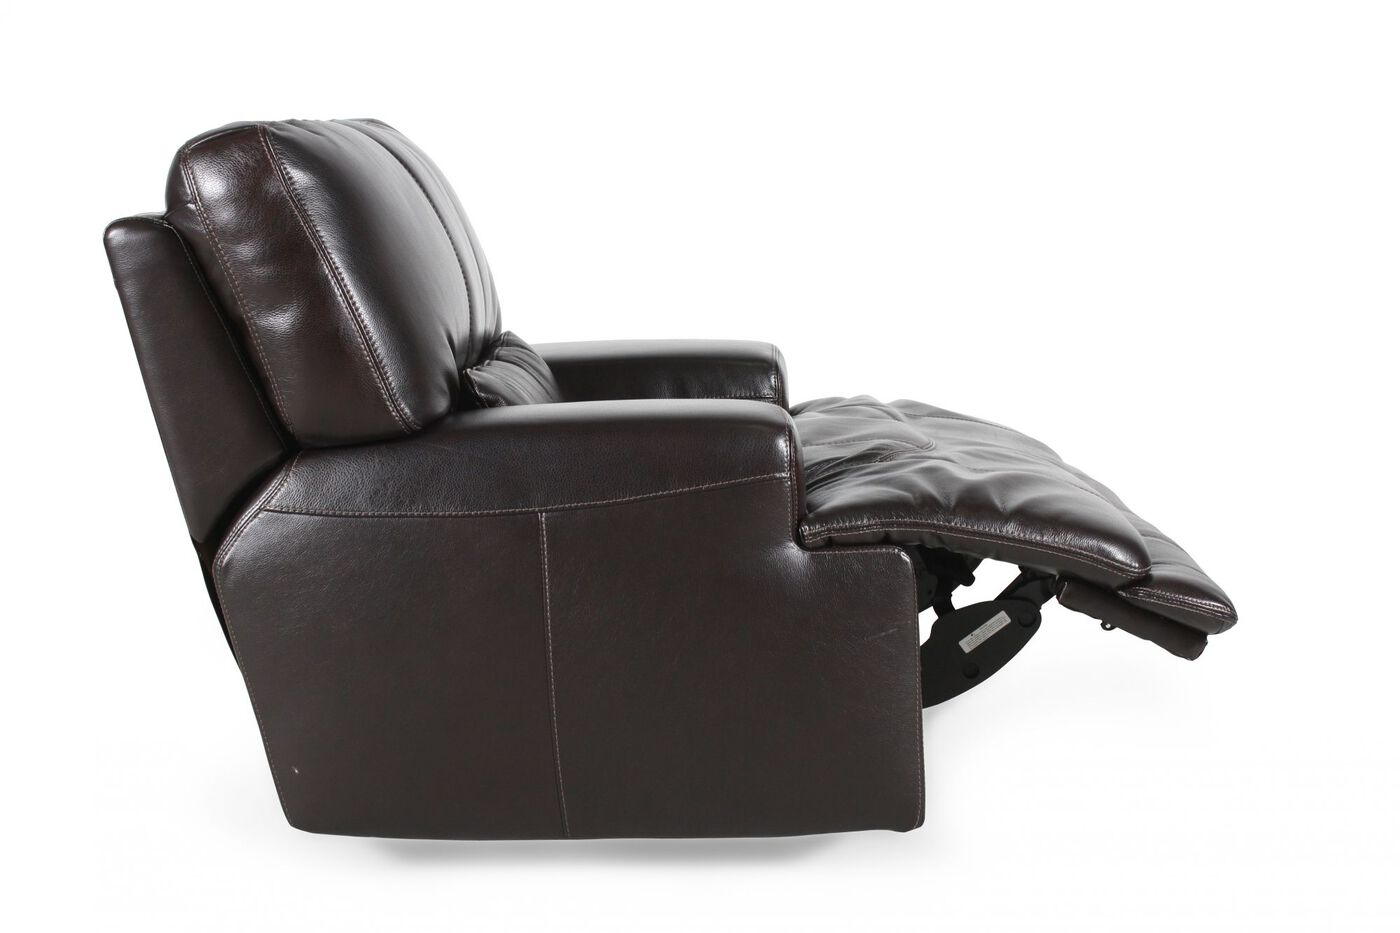 Simon Li Leather Longhorn Blackberry Recliner Mathis